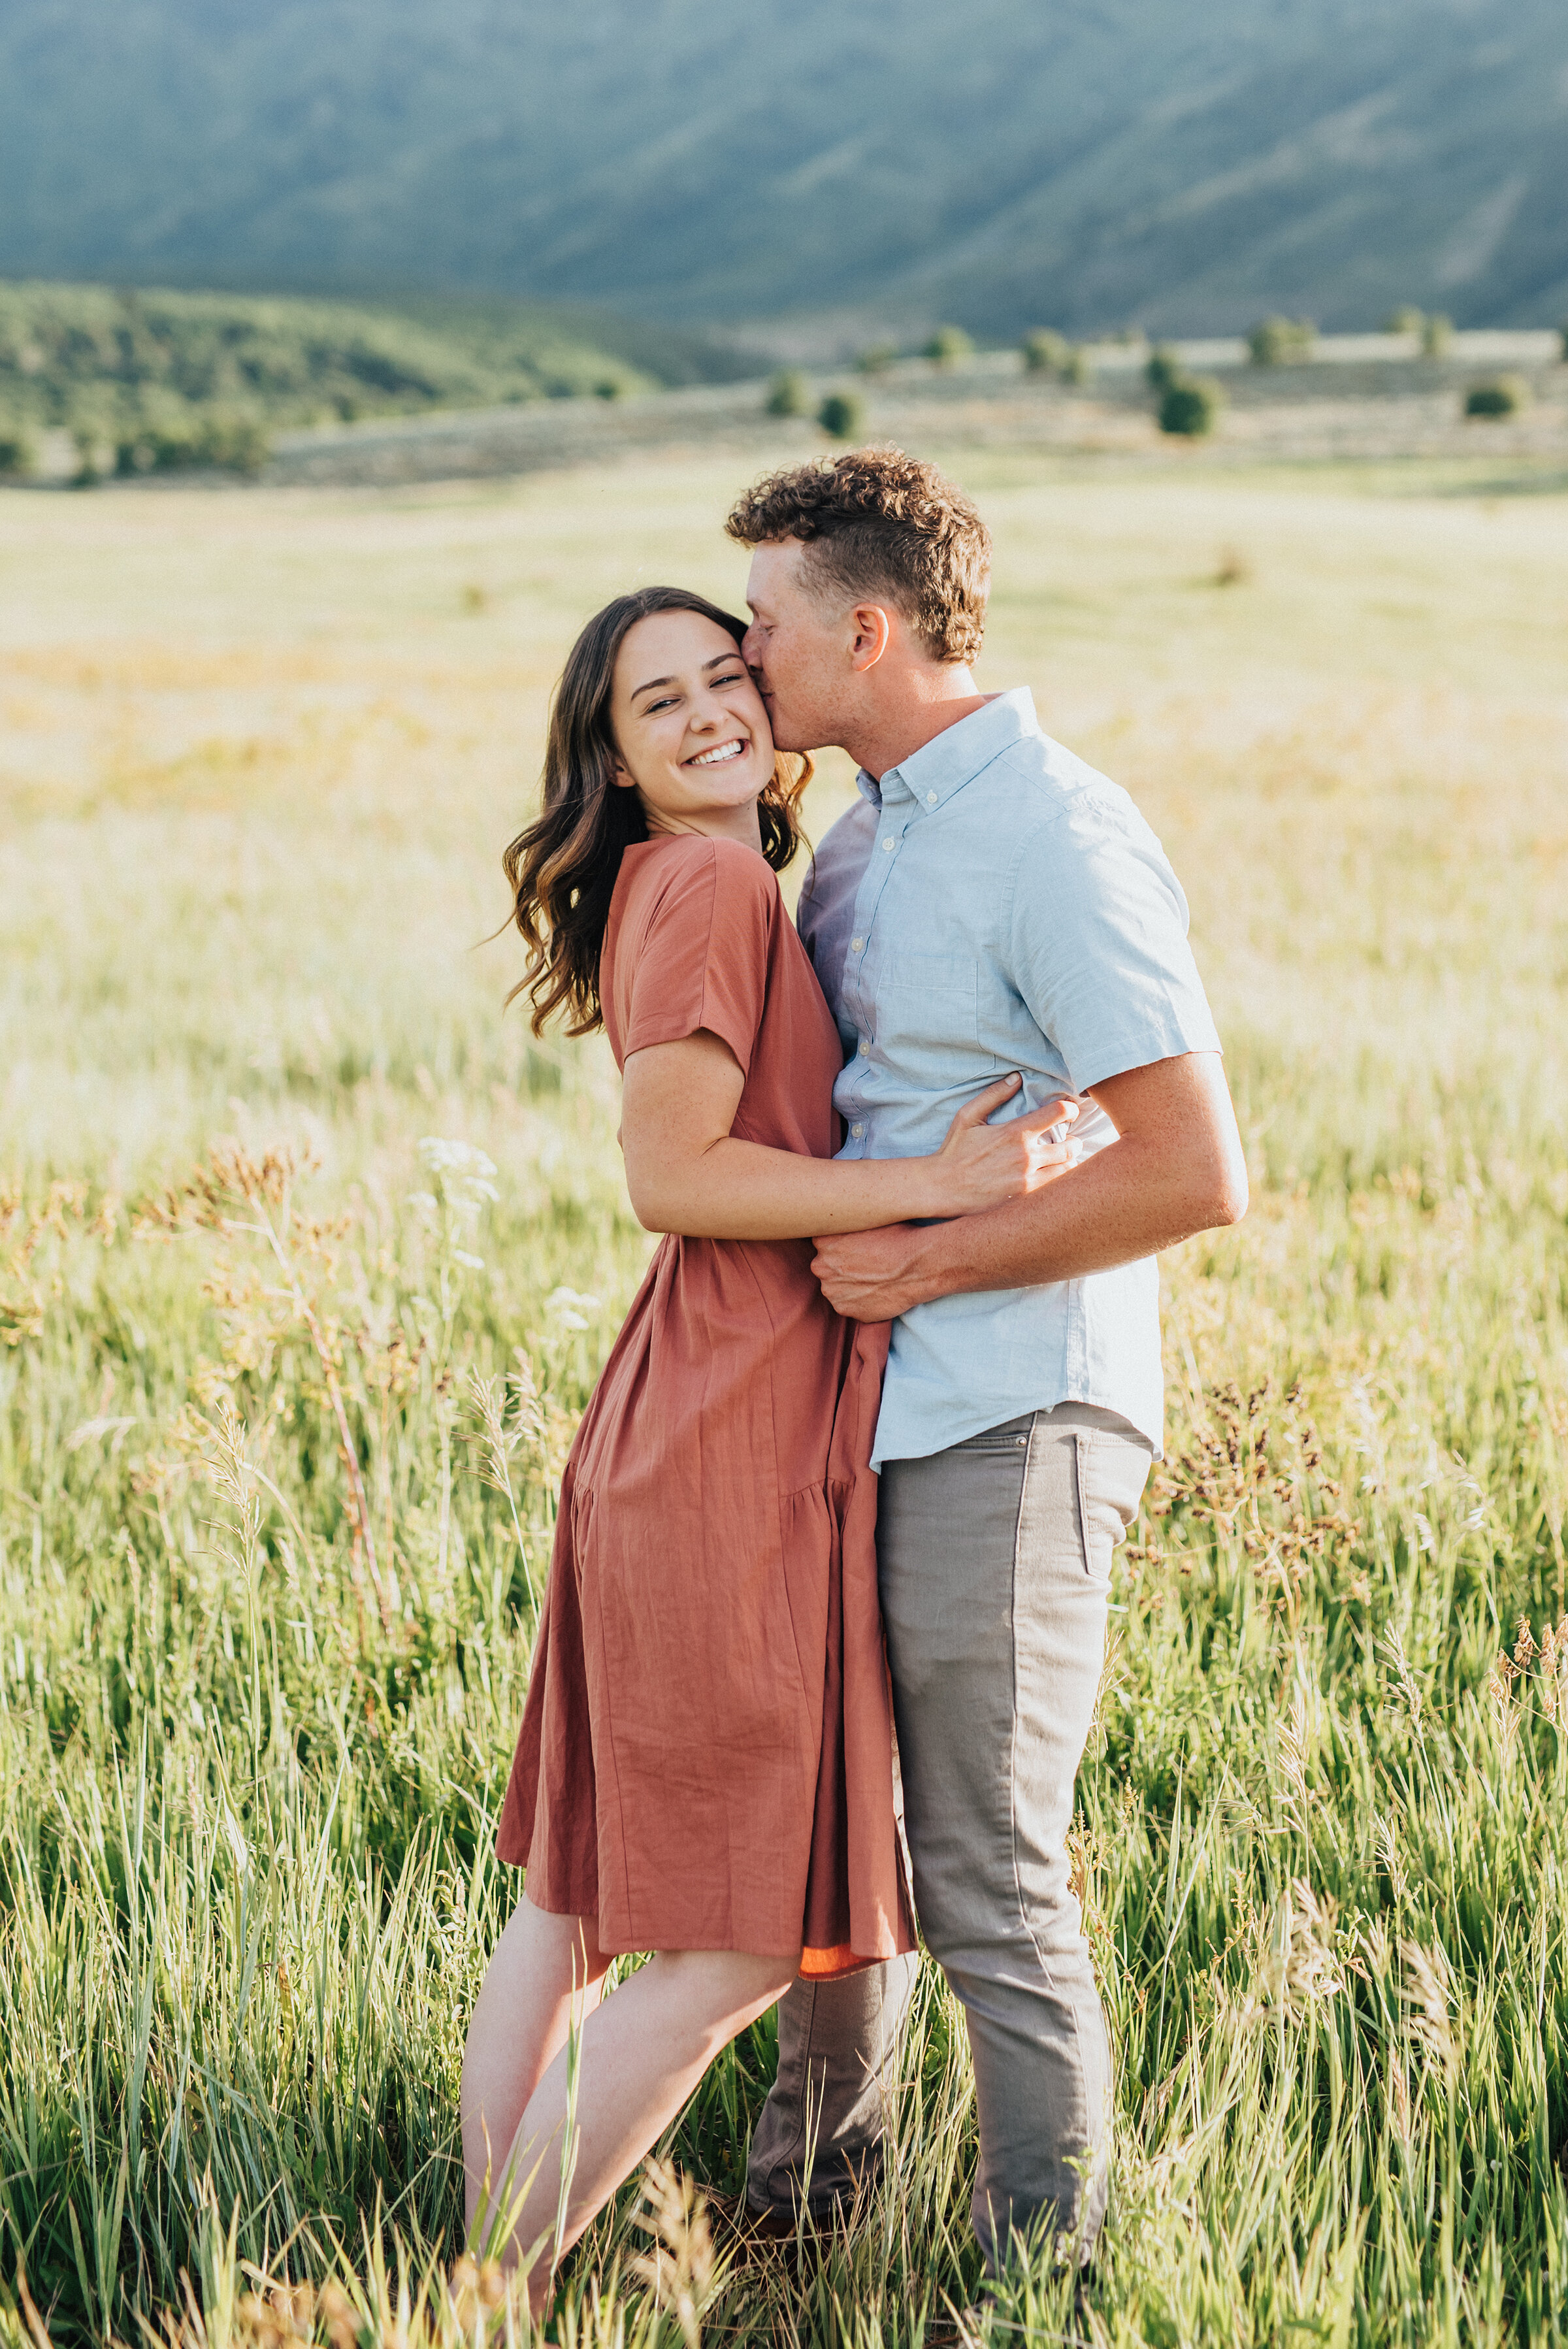 Sunset engagement session with adorable utah couple by professional engagement photographer Kristi Alyse Photography shooting in Cache Valley, Utah near the Wellsville Mountains. mountain engagement session yellow fields sunset engagement pictures outfit inspiration for engagement photos with Kristi Alyse in logan utah #engagements #loganutahphotographer #posingideas #engagementphotos #utahbride #professionalengagements #engagementinspo #couplesphotography #wellsville #mountainengagements